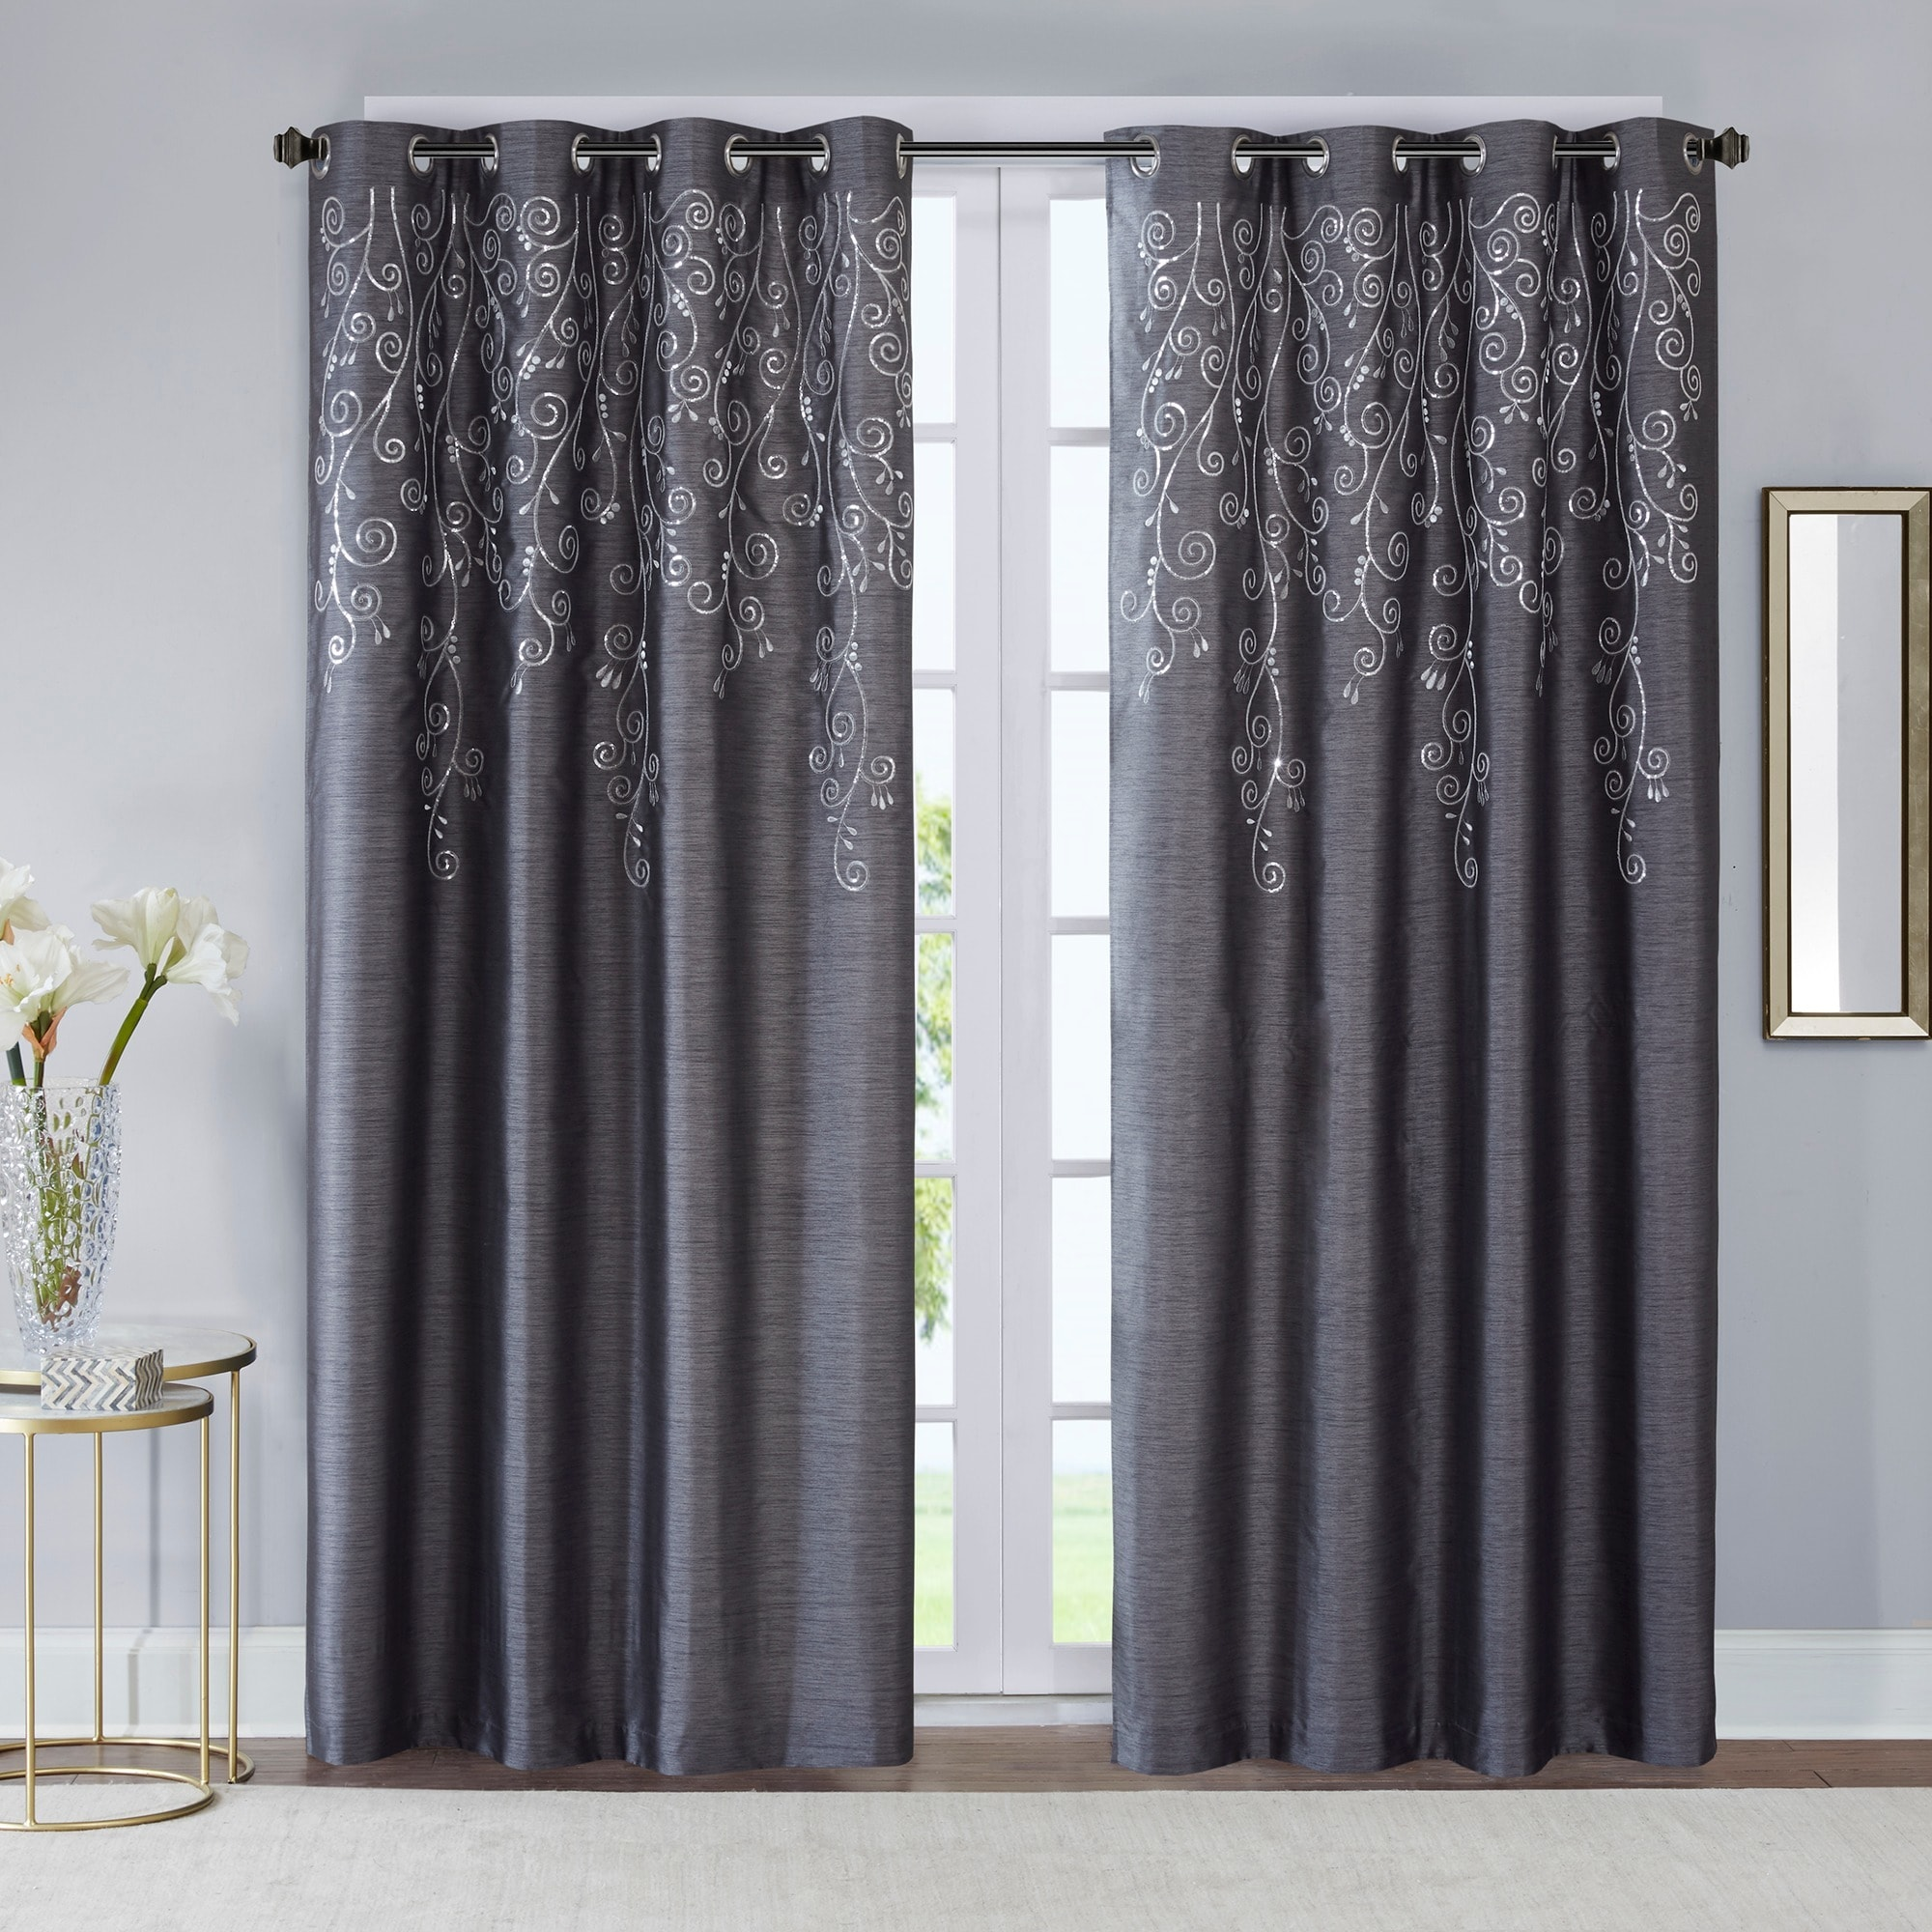 lovely curtain inspiring single ideas window design inspiration curtains